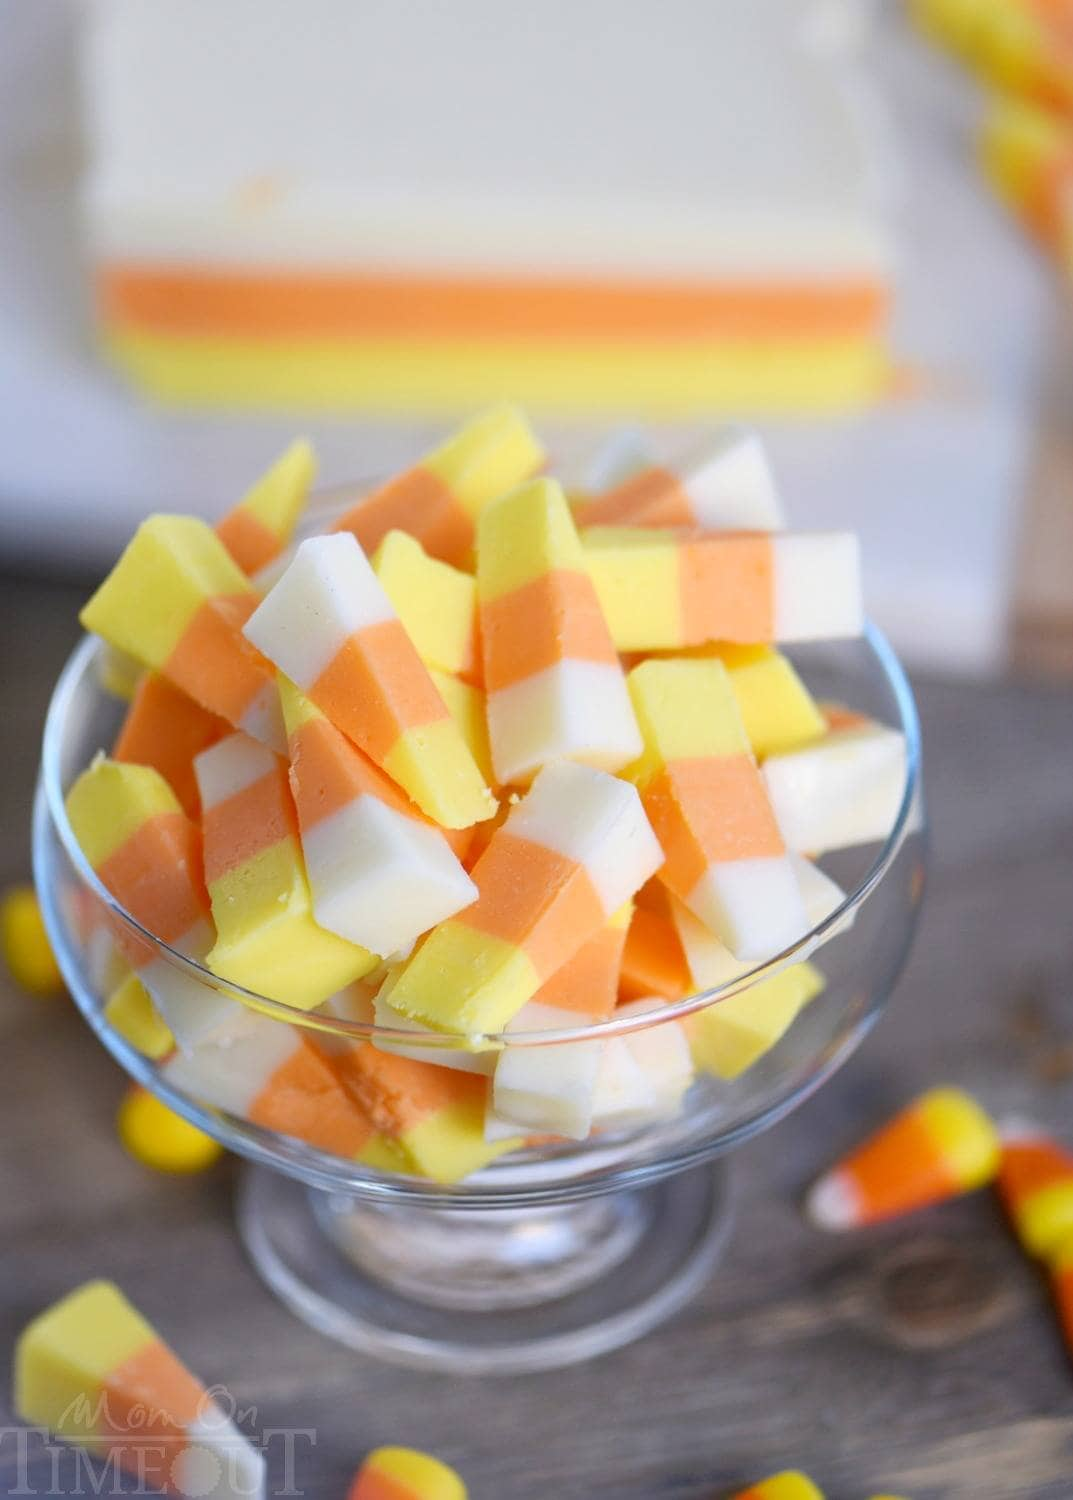 Candy Corn Fudge Video This Easy Candy Corn Fudge recipe is going to become an annual tradition! Layers of